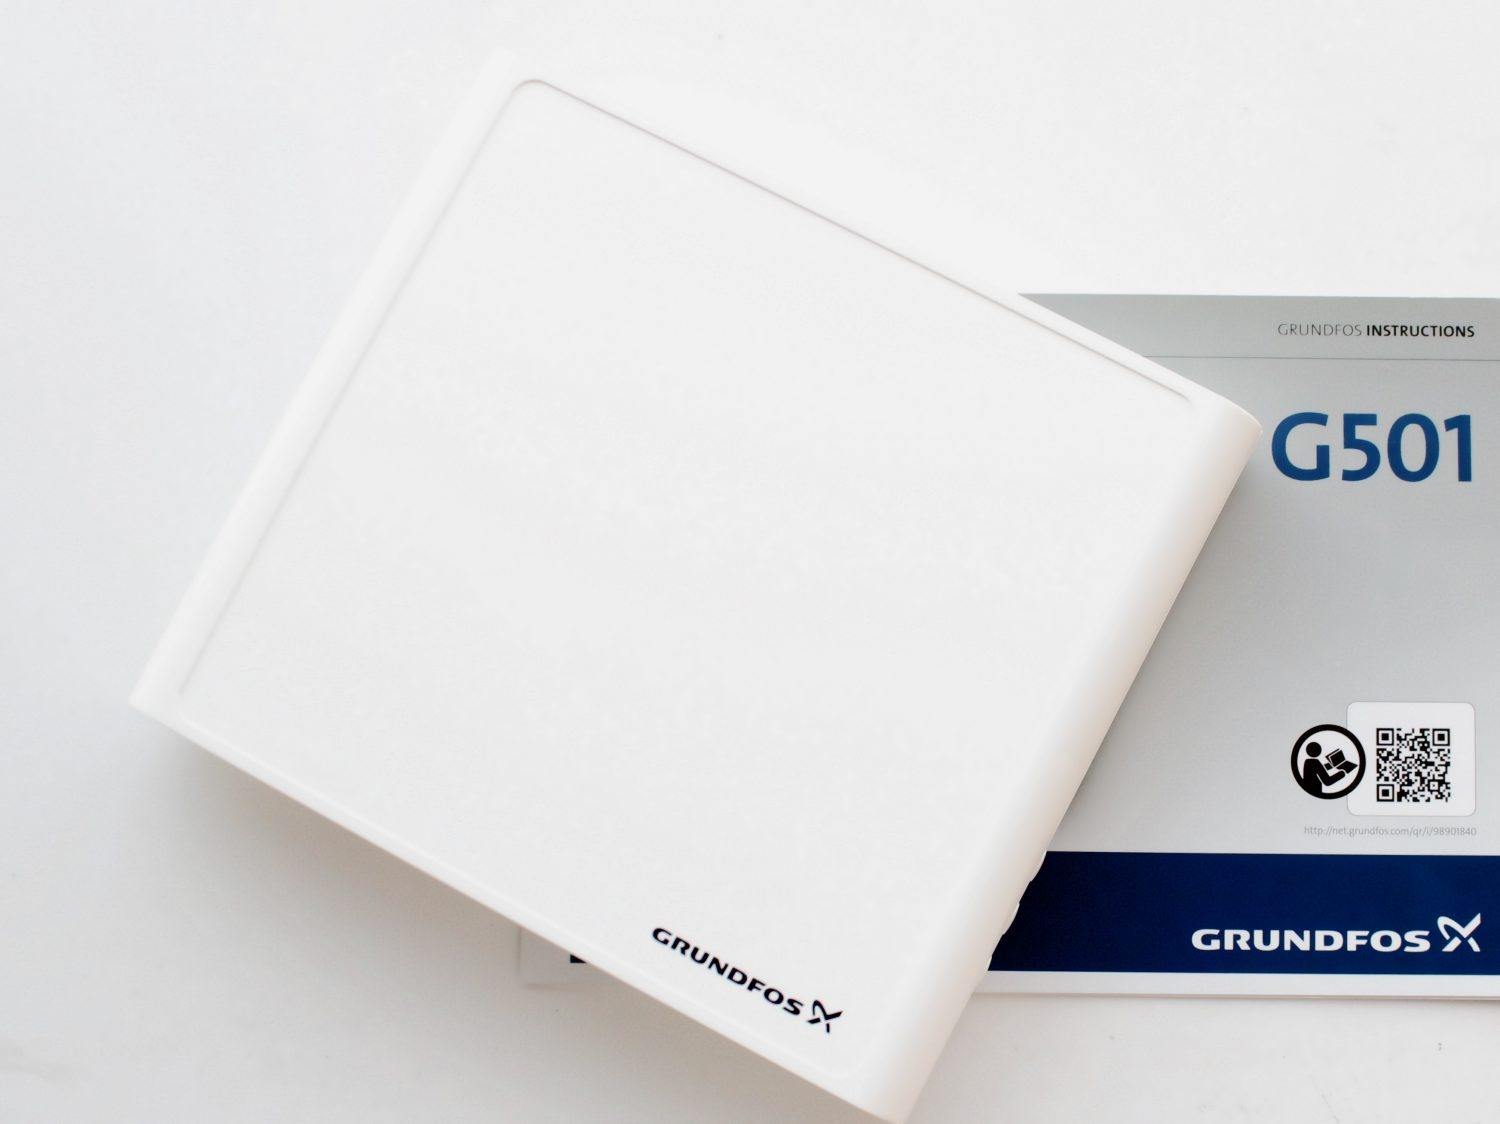 Grundfos Connect Box G501